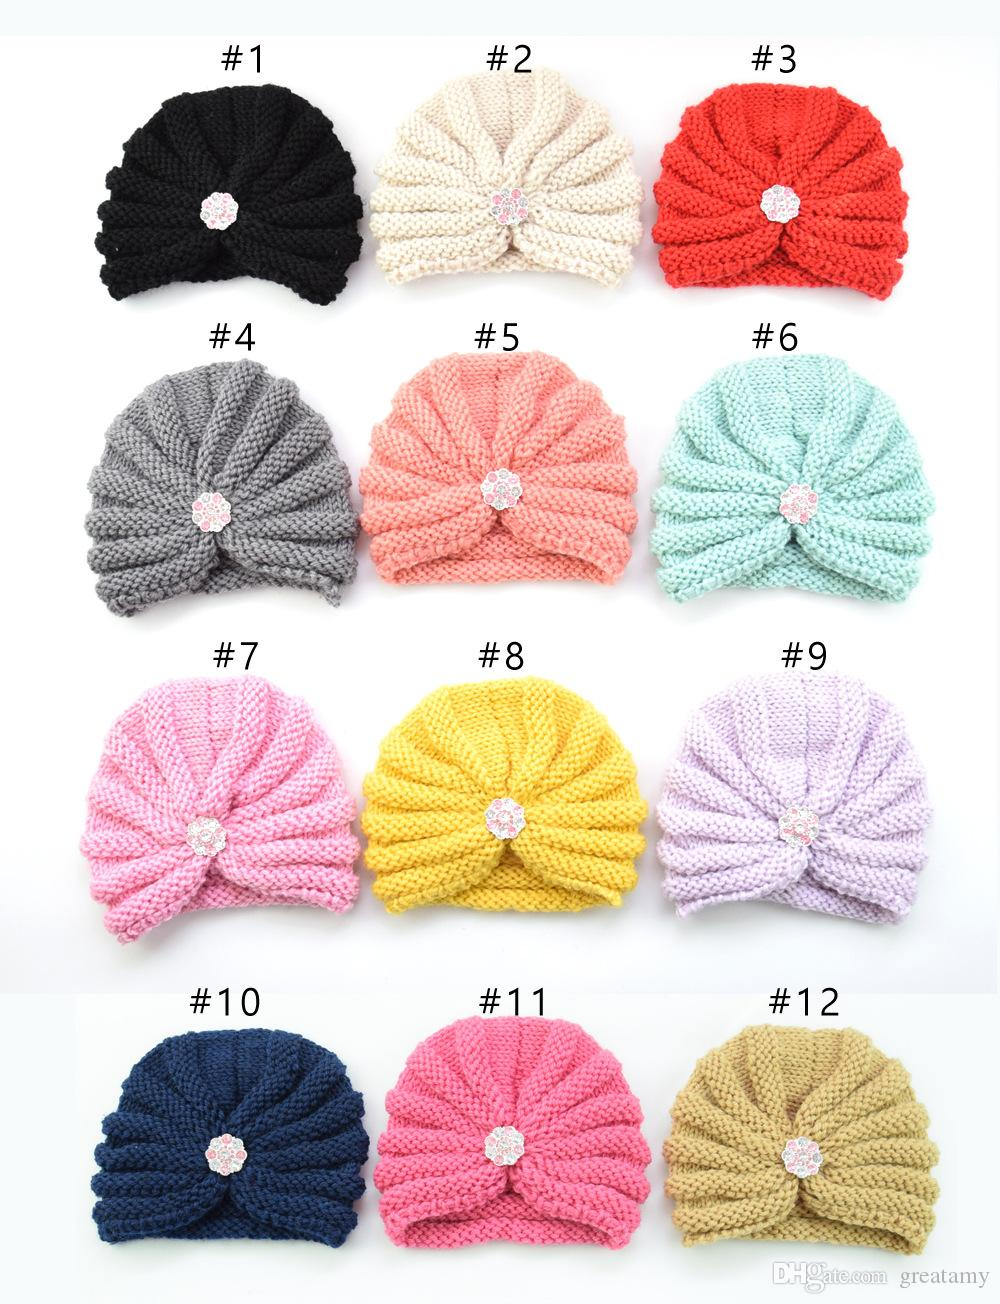 1bdc84c881e 2019 New Cute Children S Wool Thread Cap Baby Knit Hat Autumn And Winter  Warm Hat Bonnet Cap From Greatamy